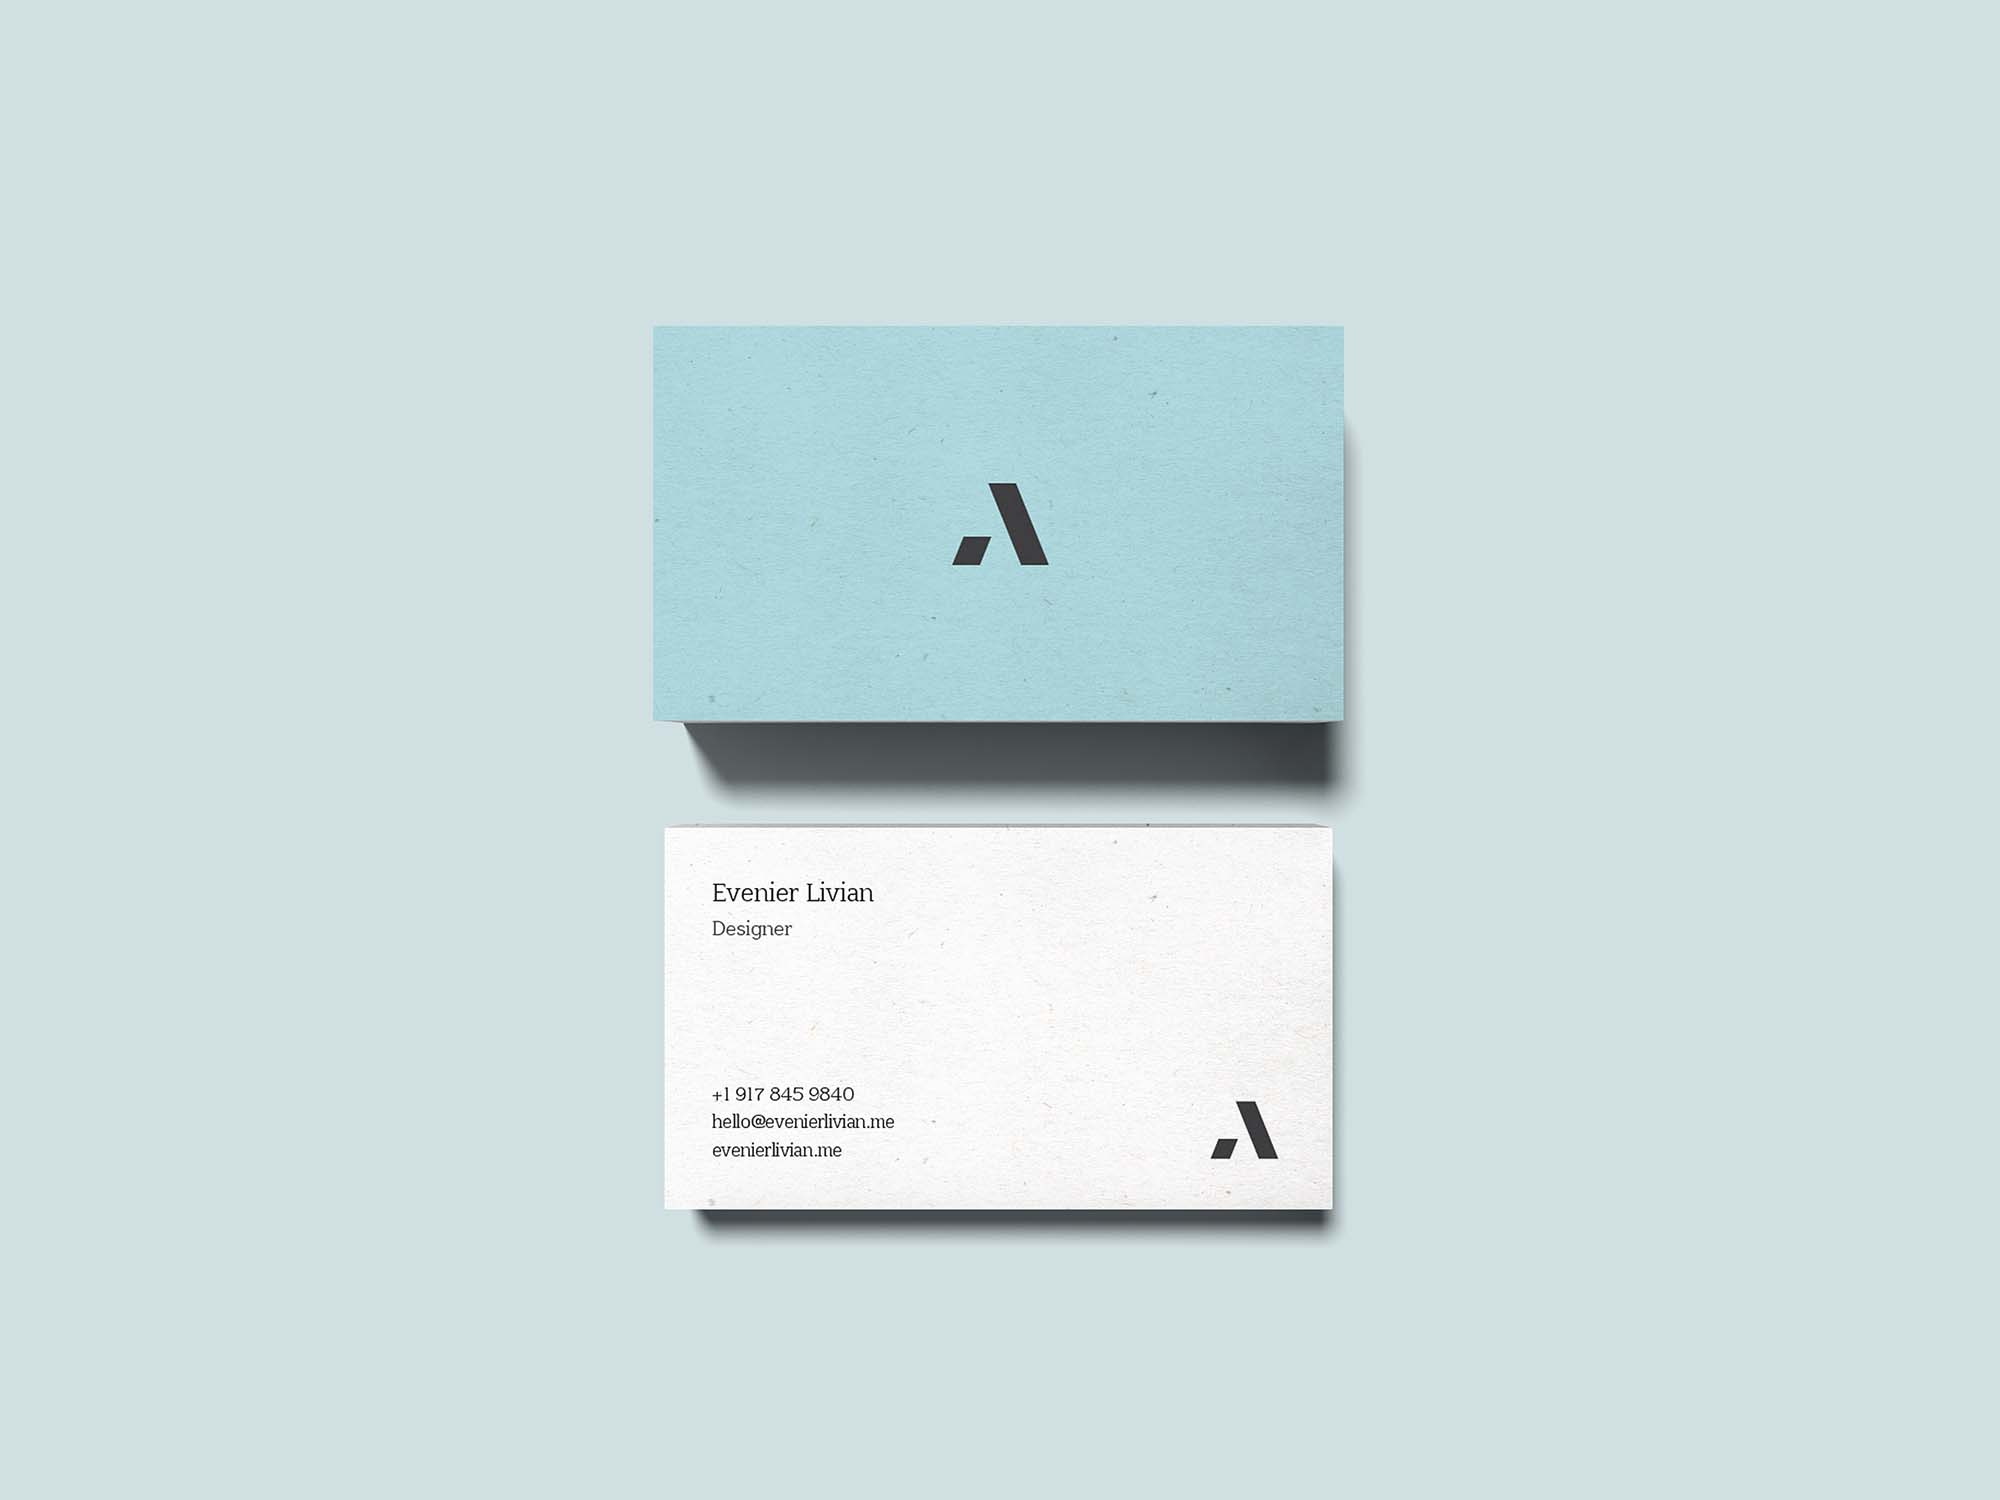 business card template - Free Digital Business Card